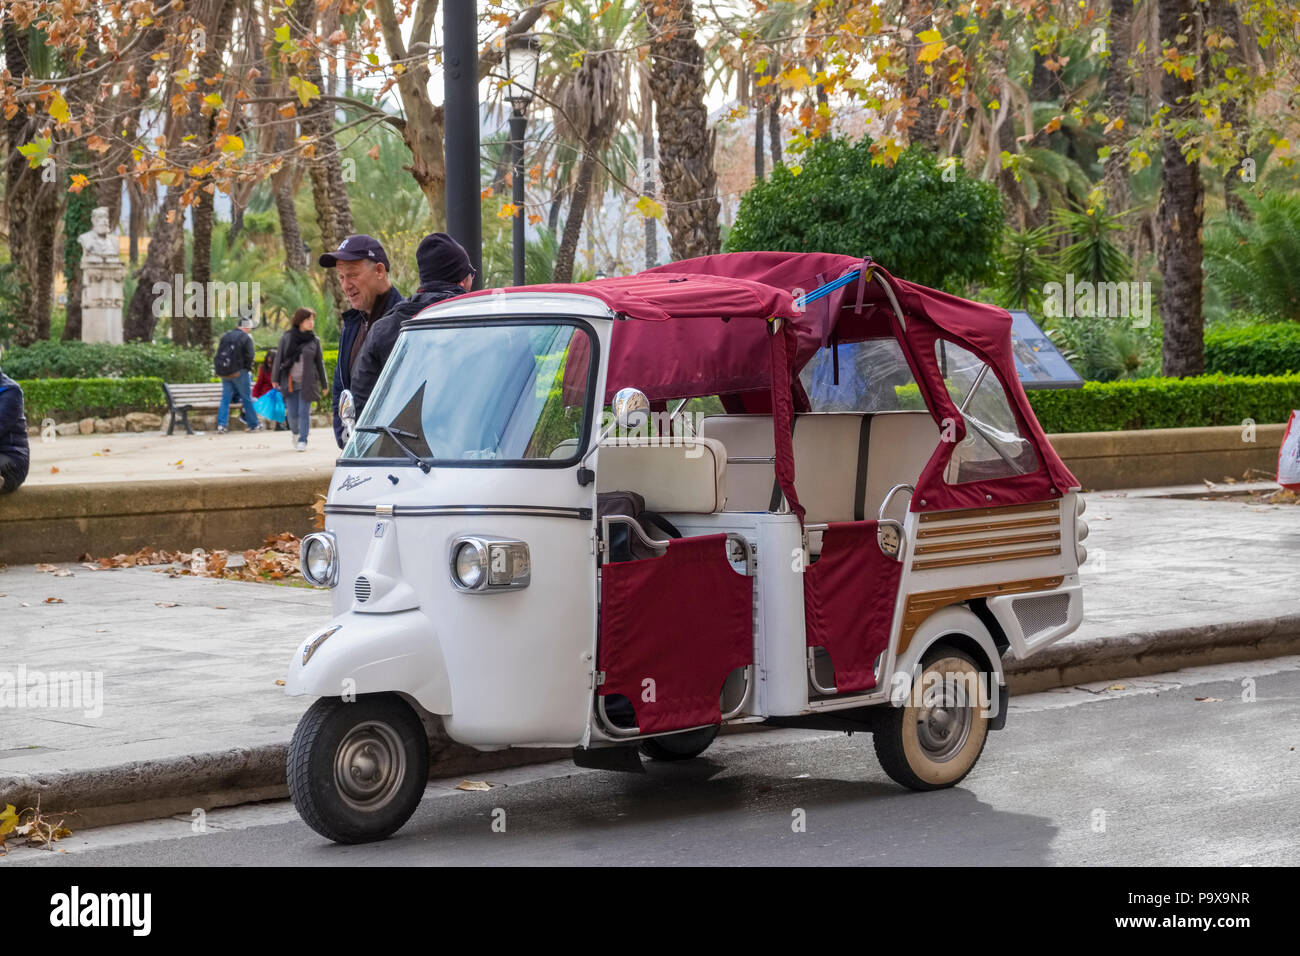 Tourist taxi, tricycle taxi, Palermo, Sicily, Italy, Europe - Stock Image